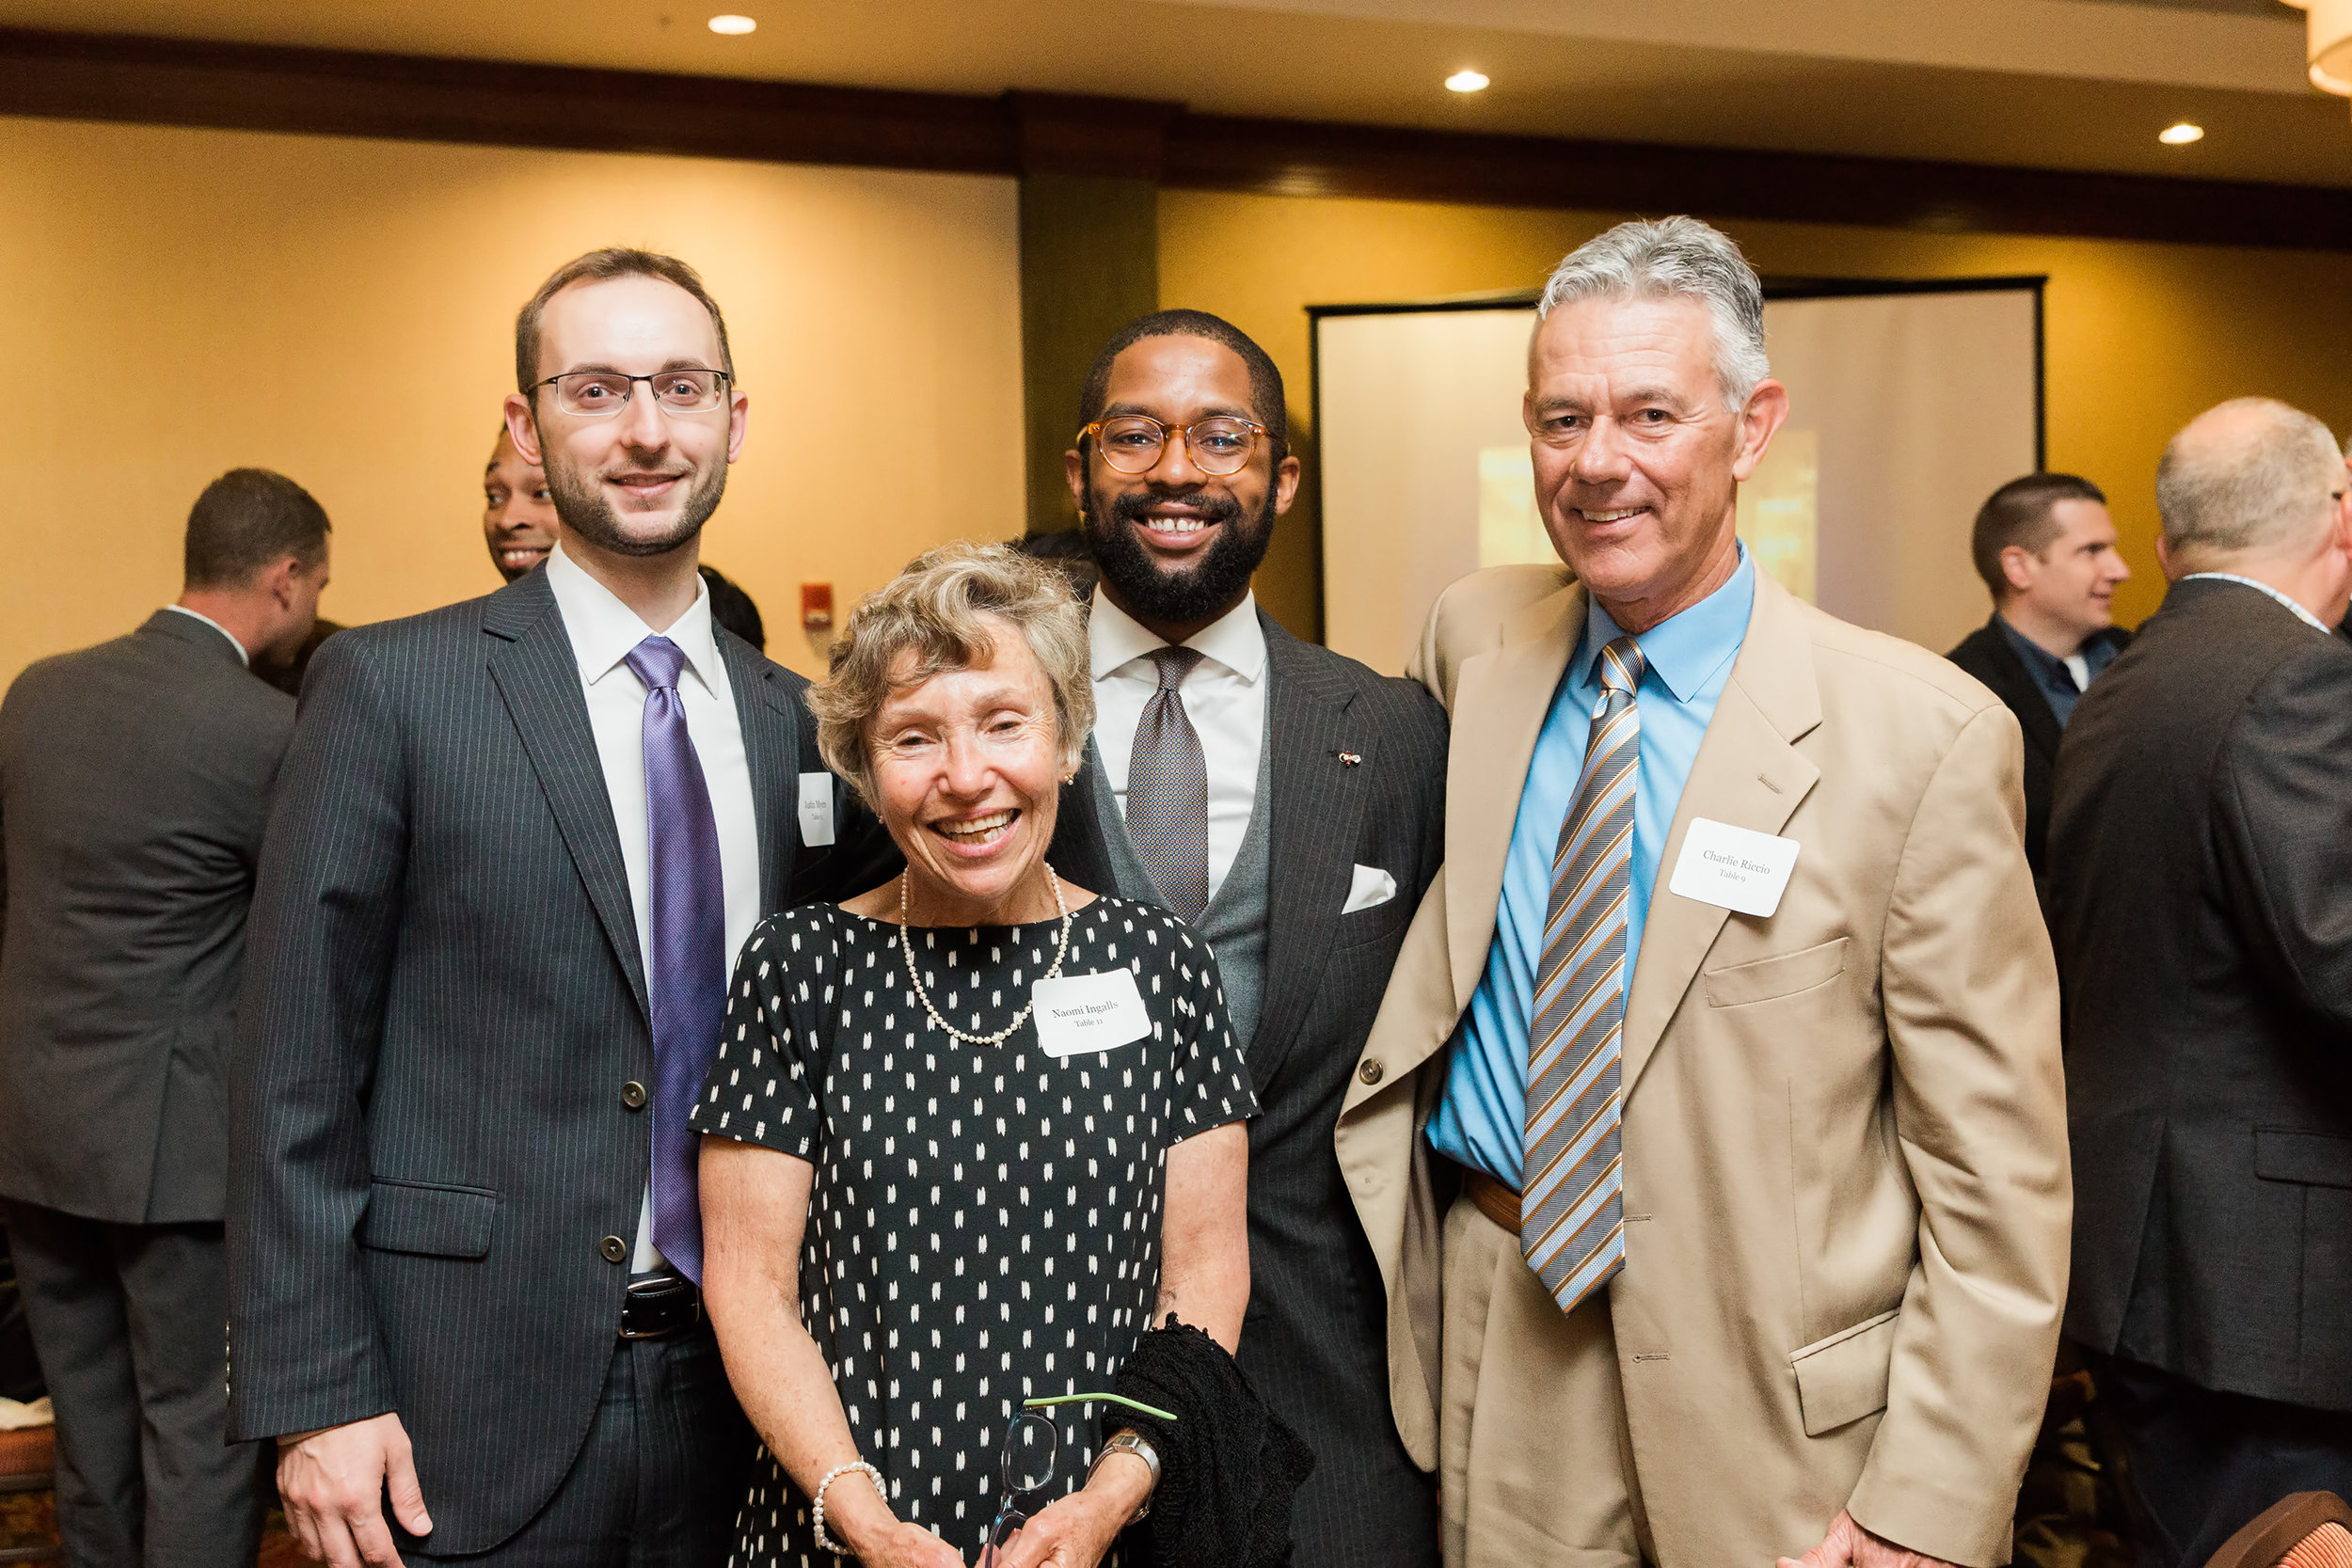 from left, Justin, Naomi Ingalls, former Troy mentor coordinator, Travon, and Charlie Riccio, former Troy Academic Coordinator